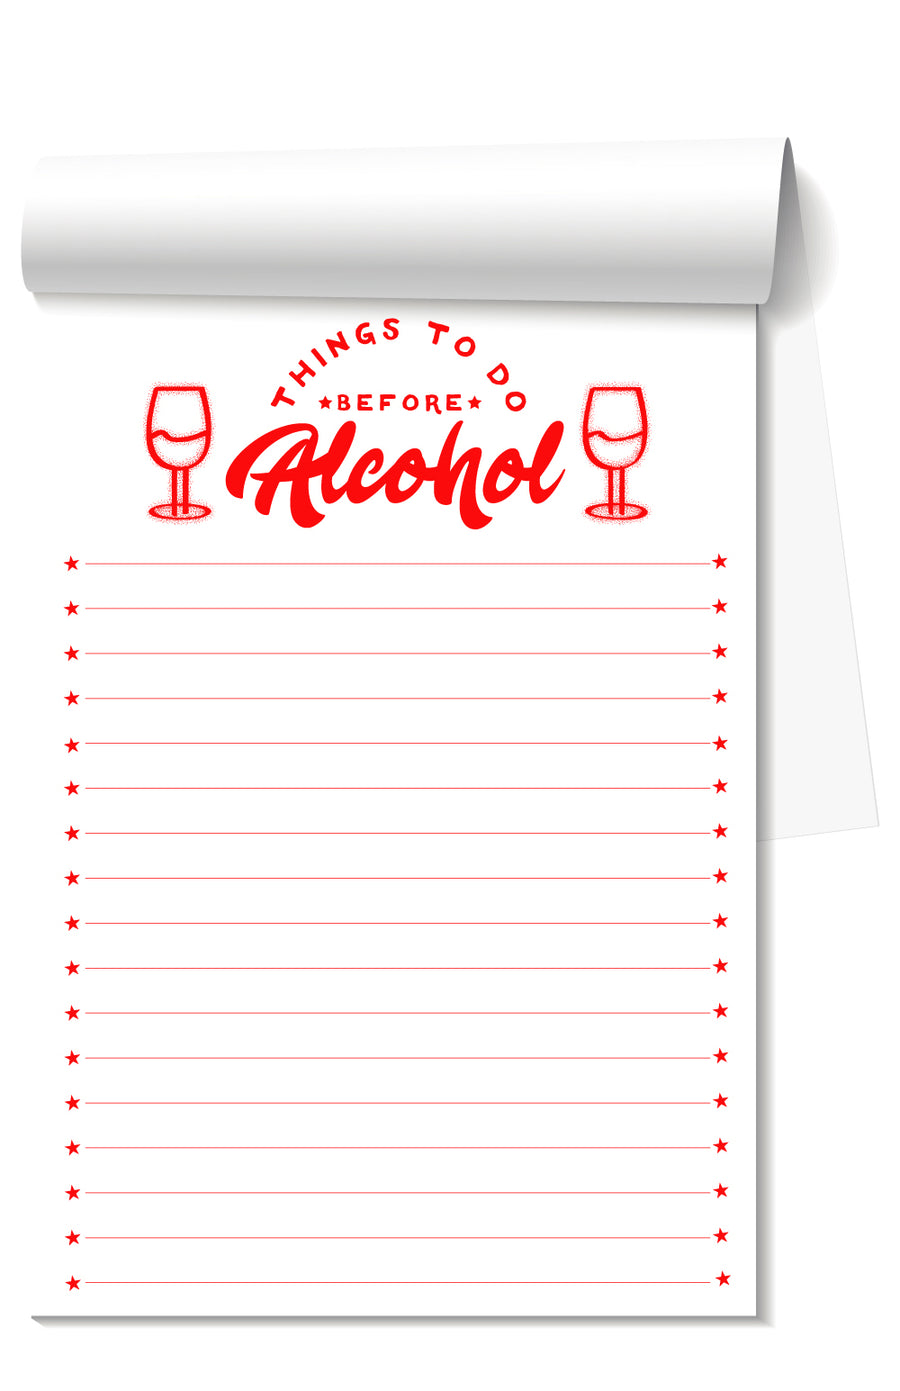 Things To Do Before Alcohol Notepad - West of Camden